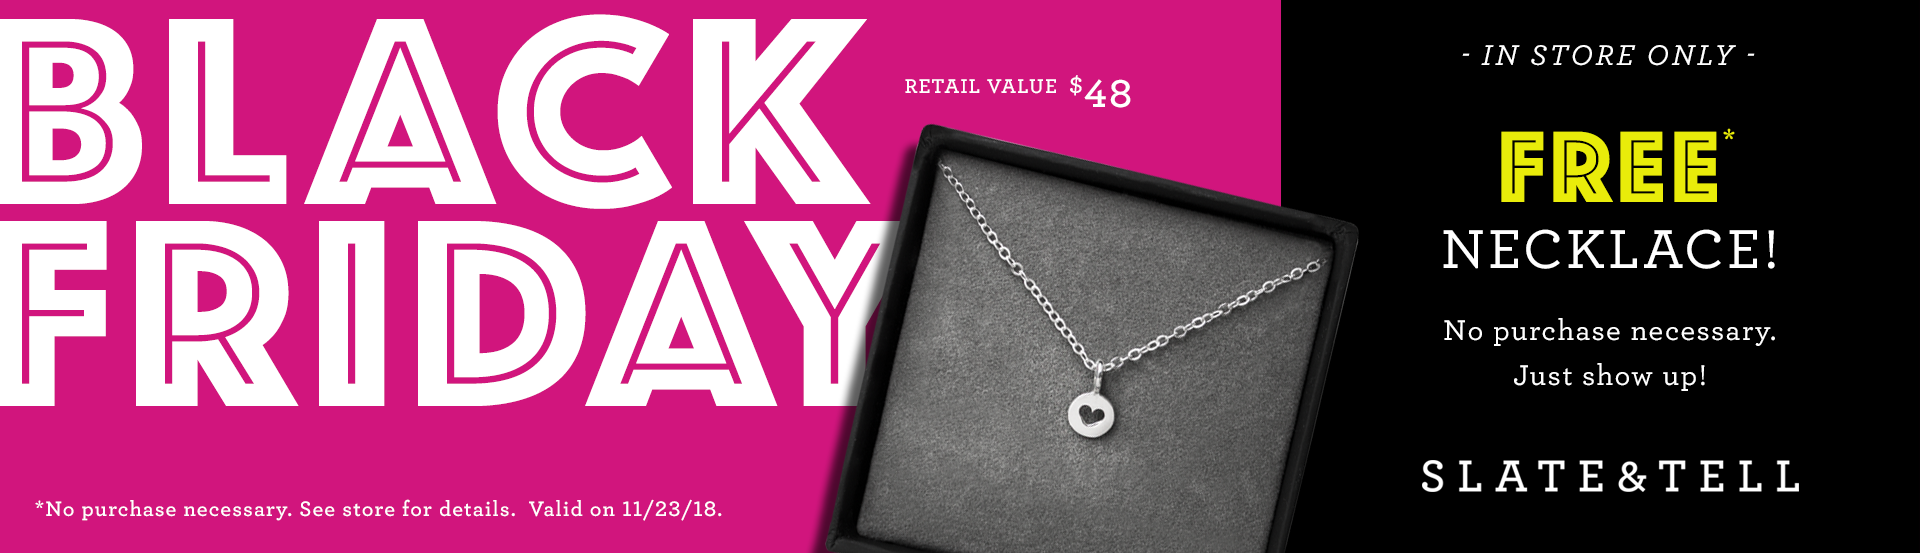 Free Necklace On Black Friday!